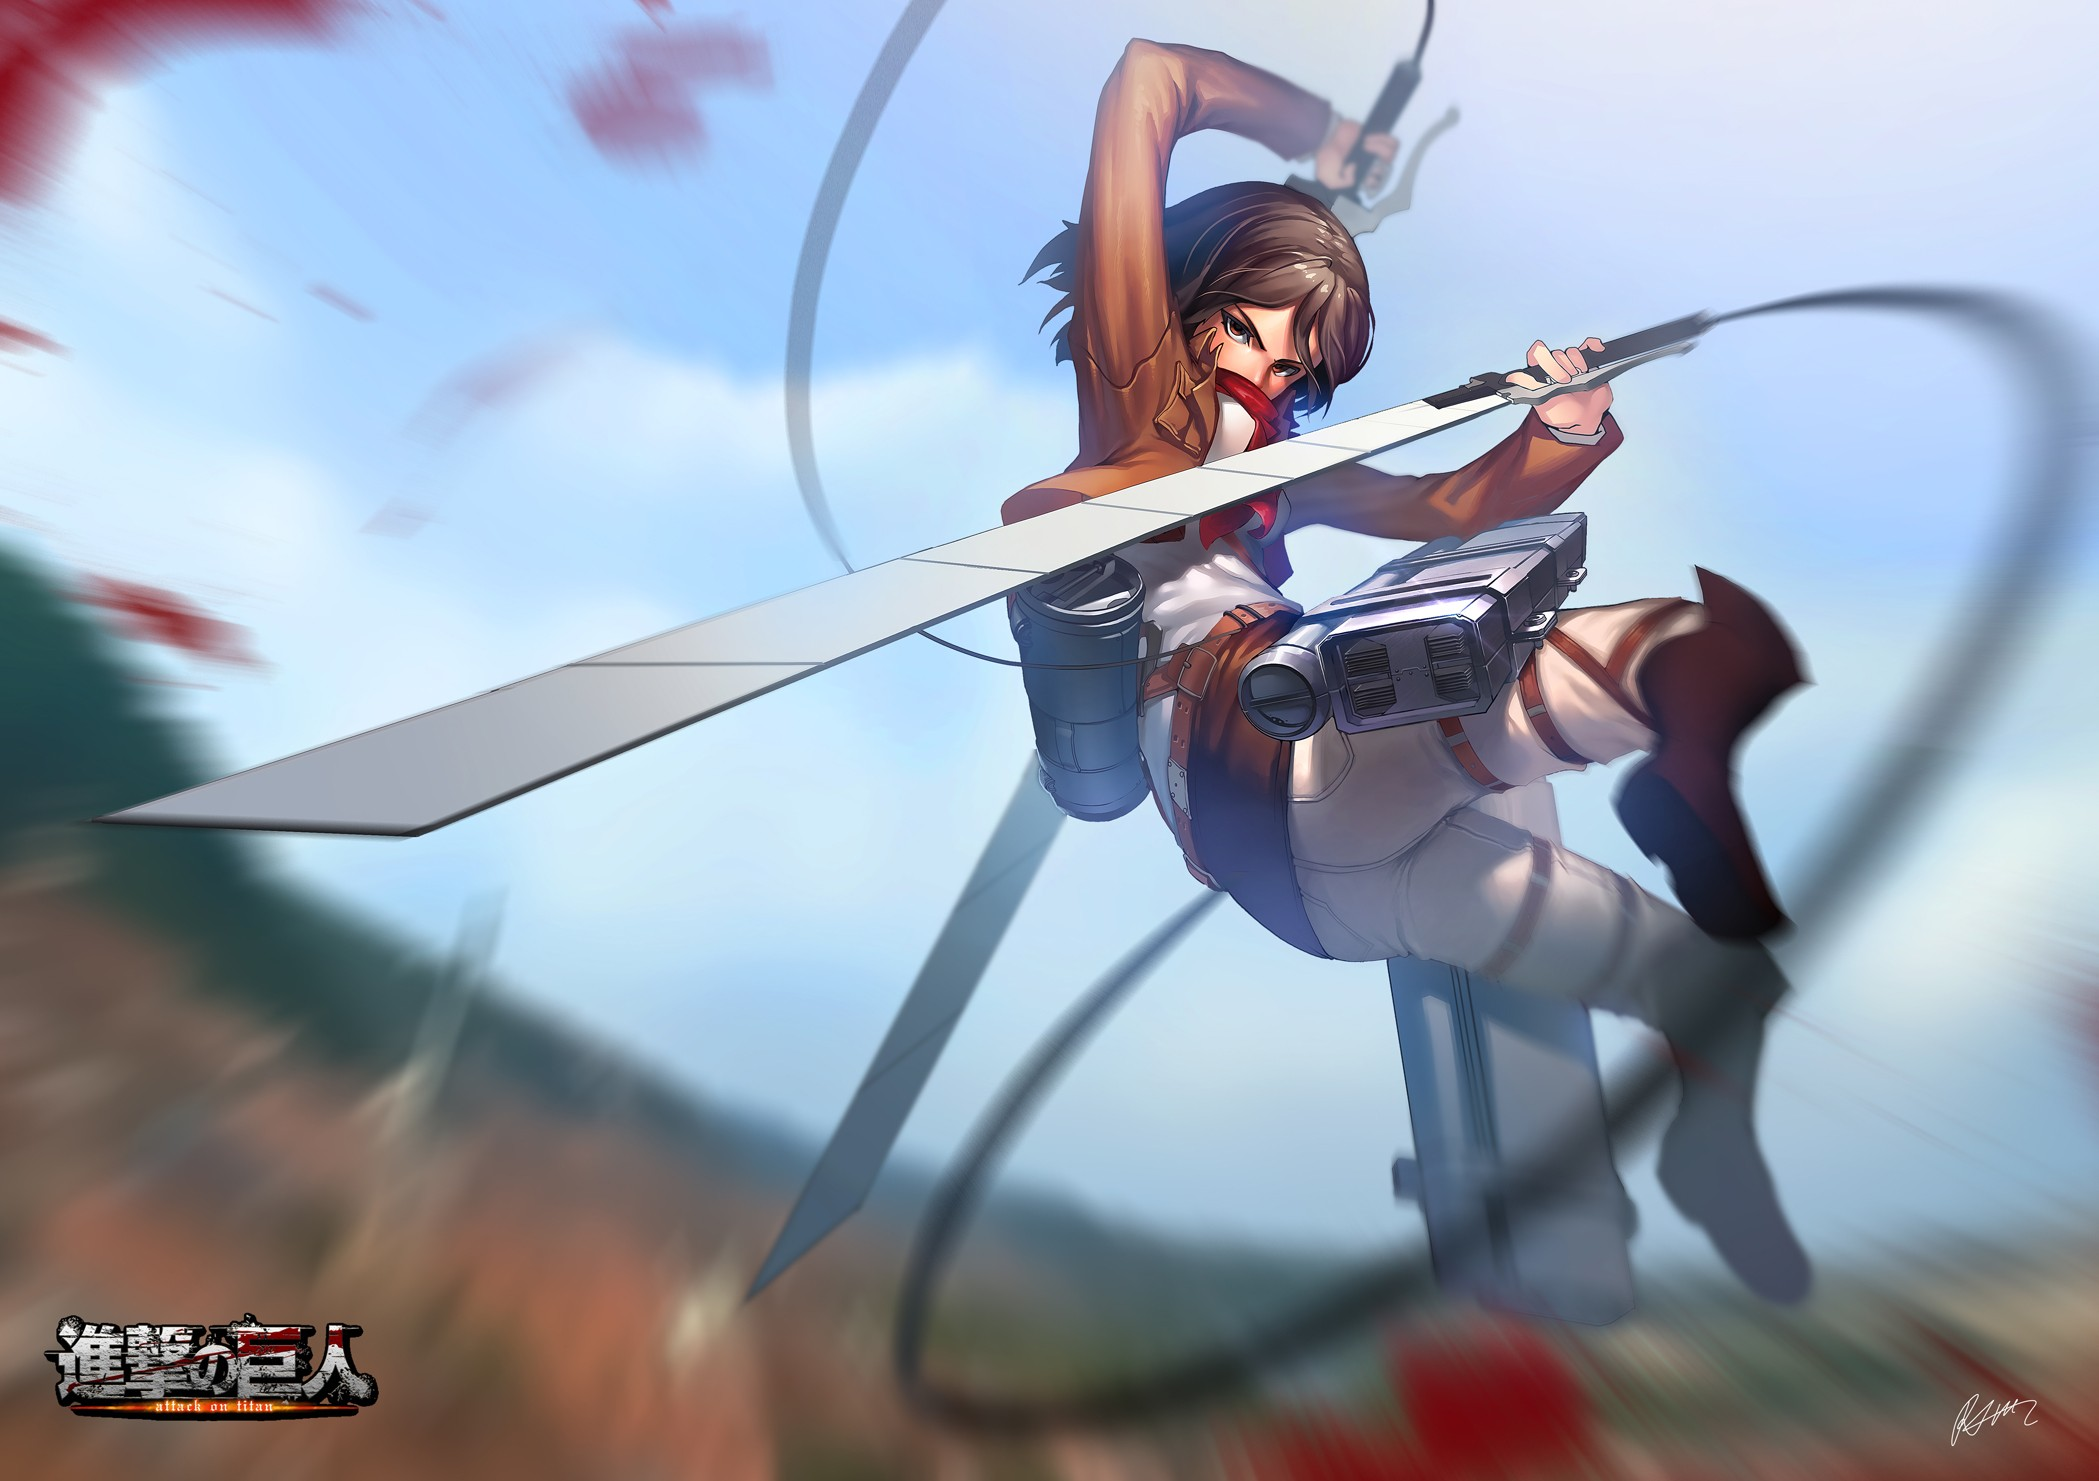 767 Mikasa Ackerman Hd Wallpapers Background Images Wallpaper